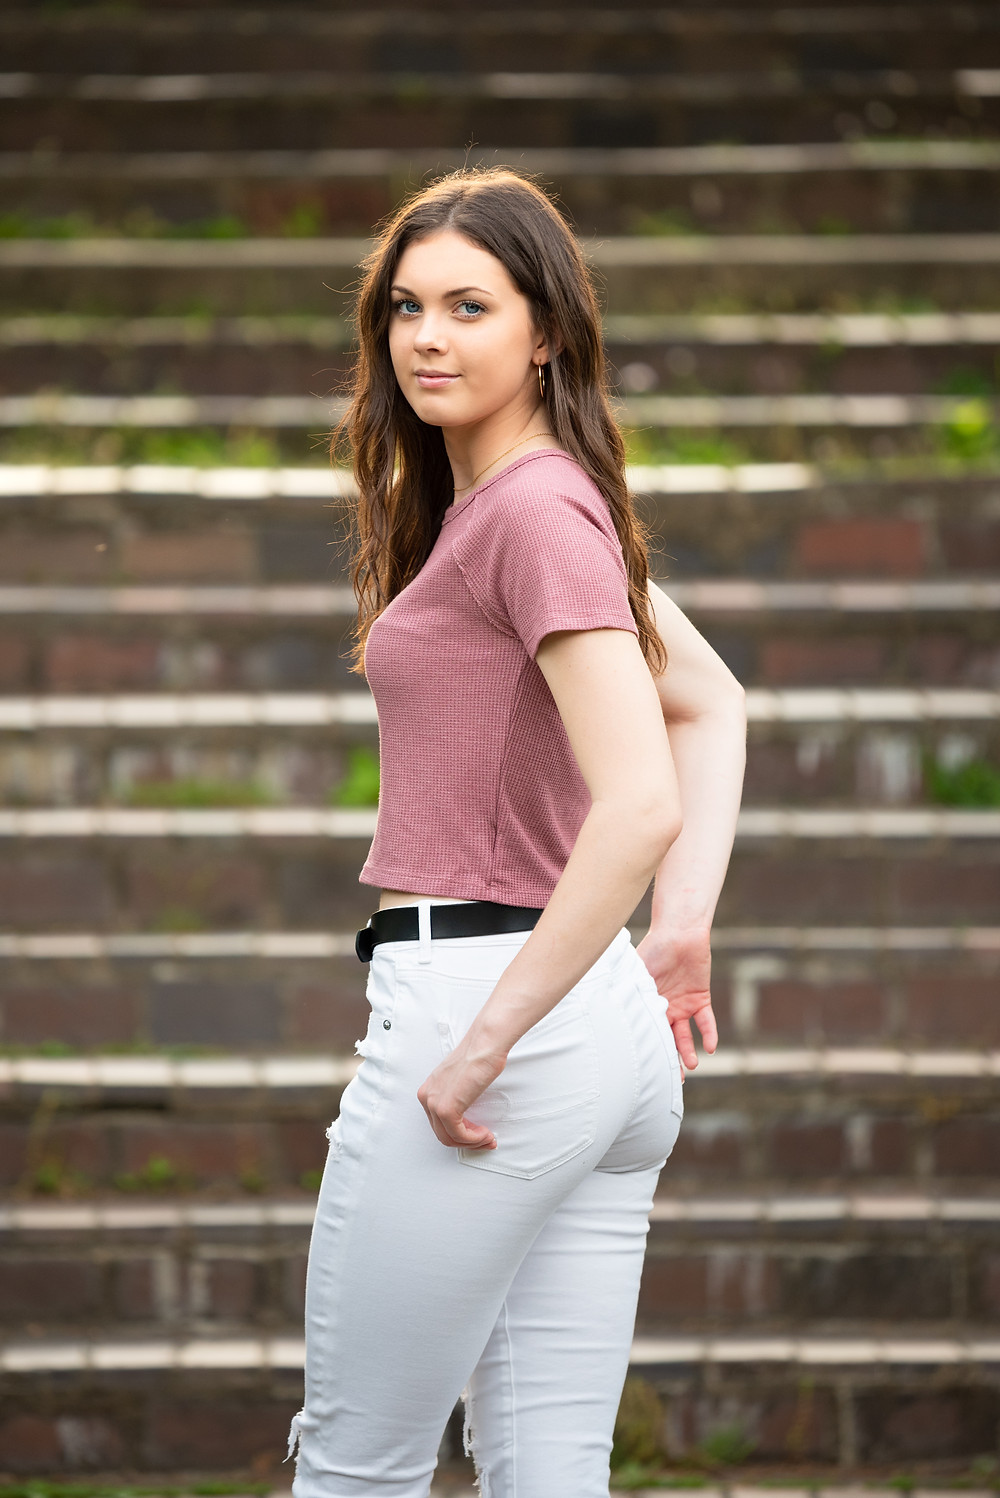 Senior girl posed looking back at the camera wearing a pink top and white jeans